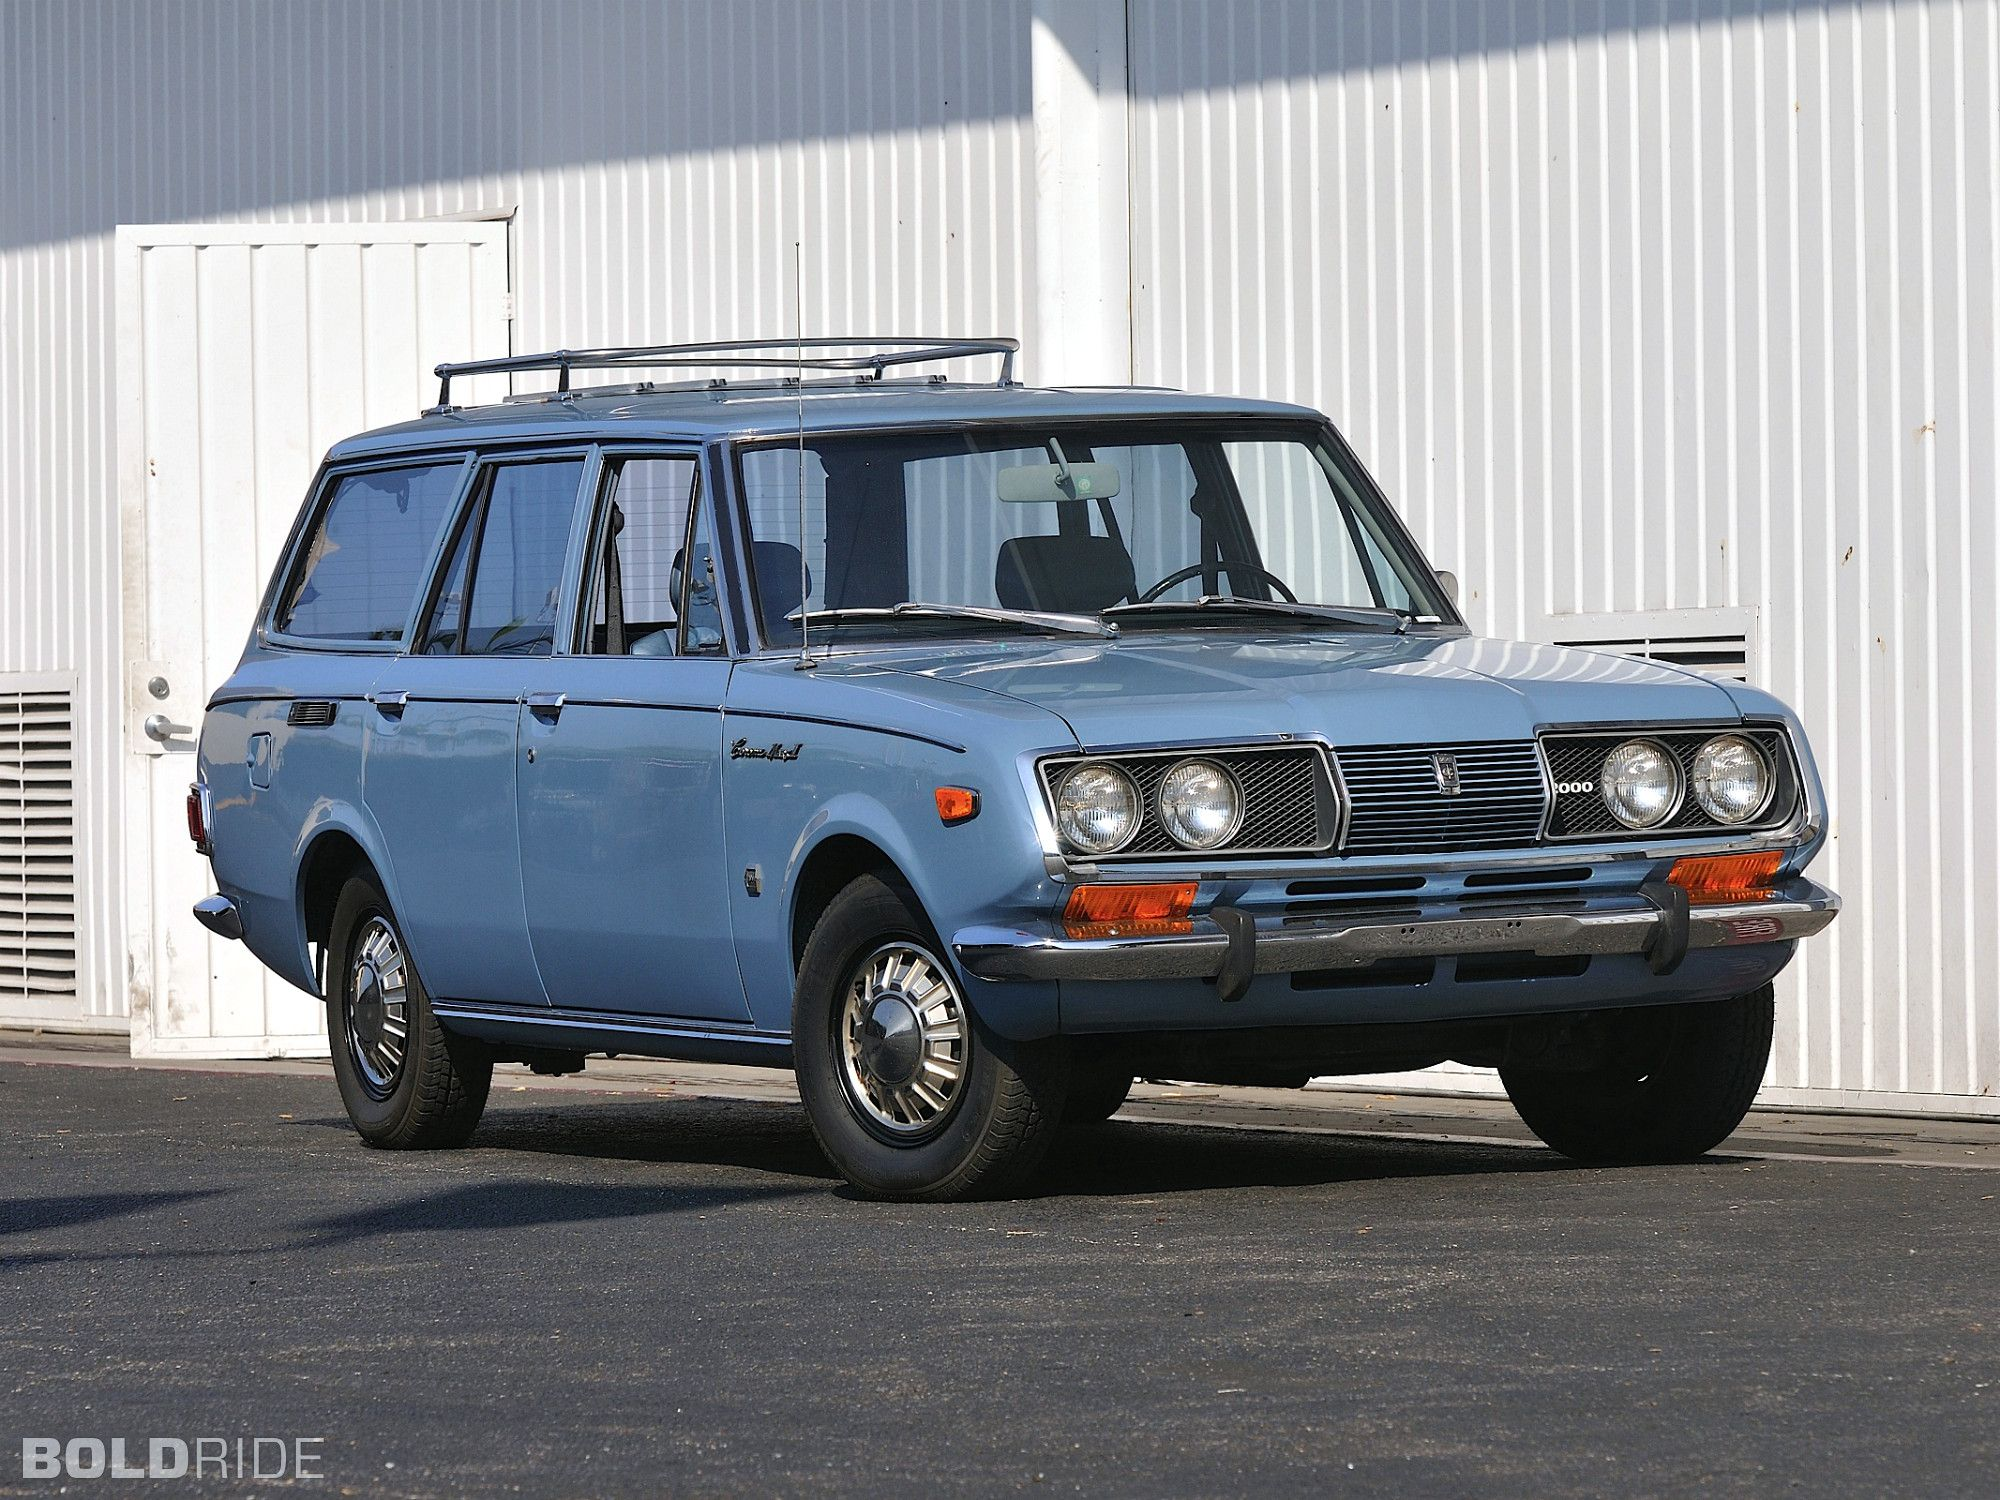 1968 72 toyota corona mark ii wagon classic cars. Black Bedroom Furniture Sets. Home Design Ideas